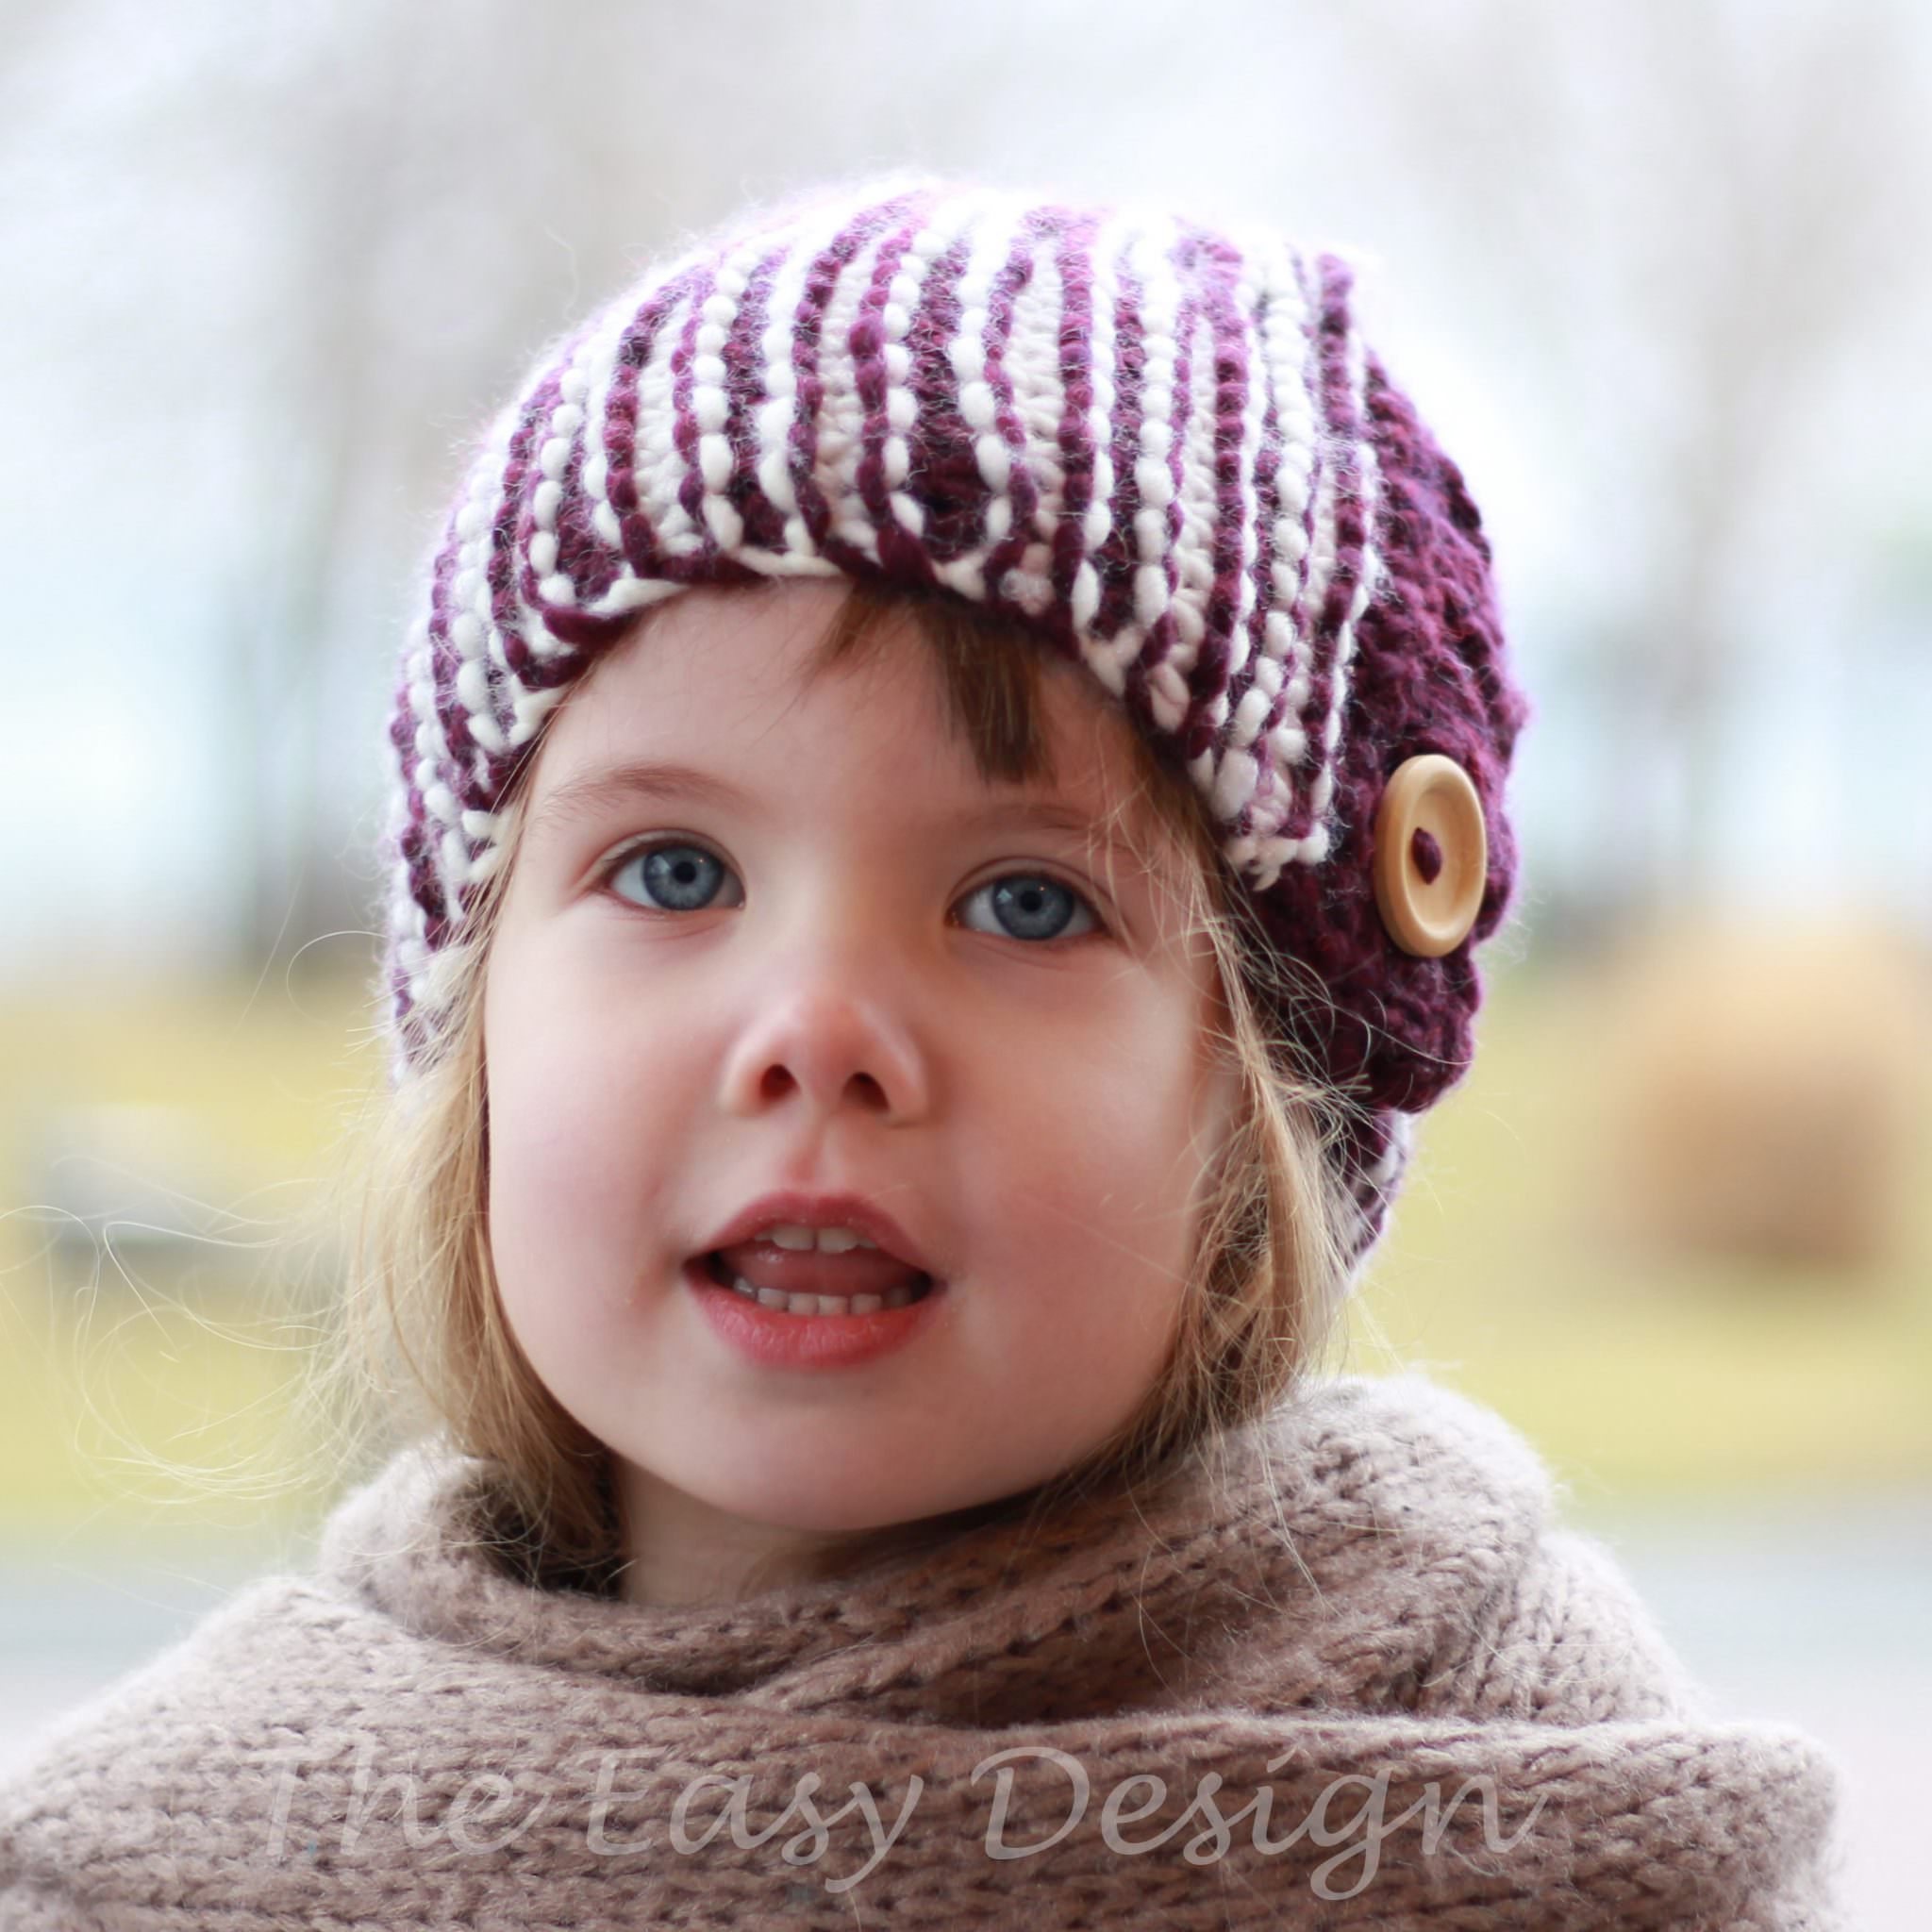 Cloche Hat Pattern Knitting : GRACE / CLOCHE HAT - KNITTING PATTERN - The Easy Design